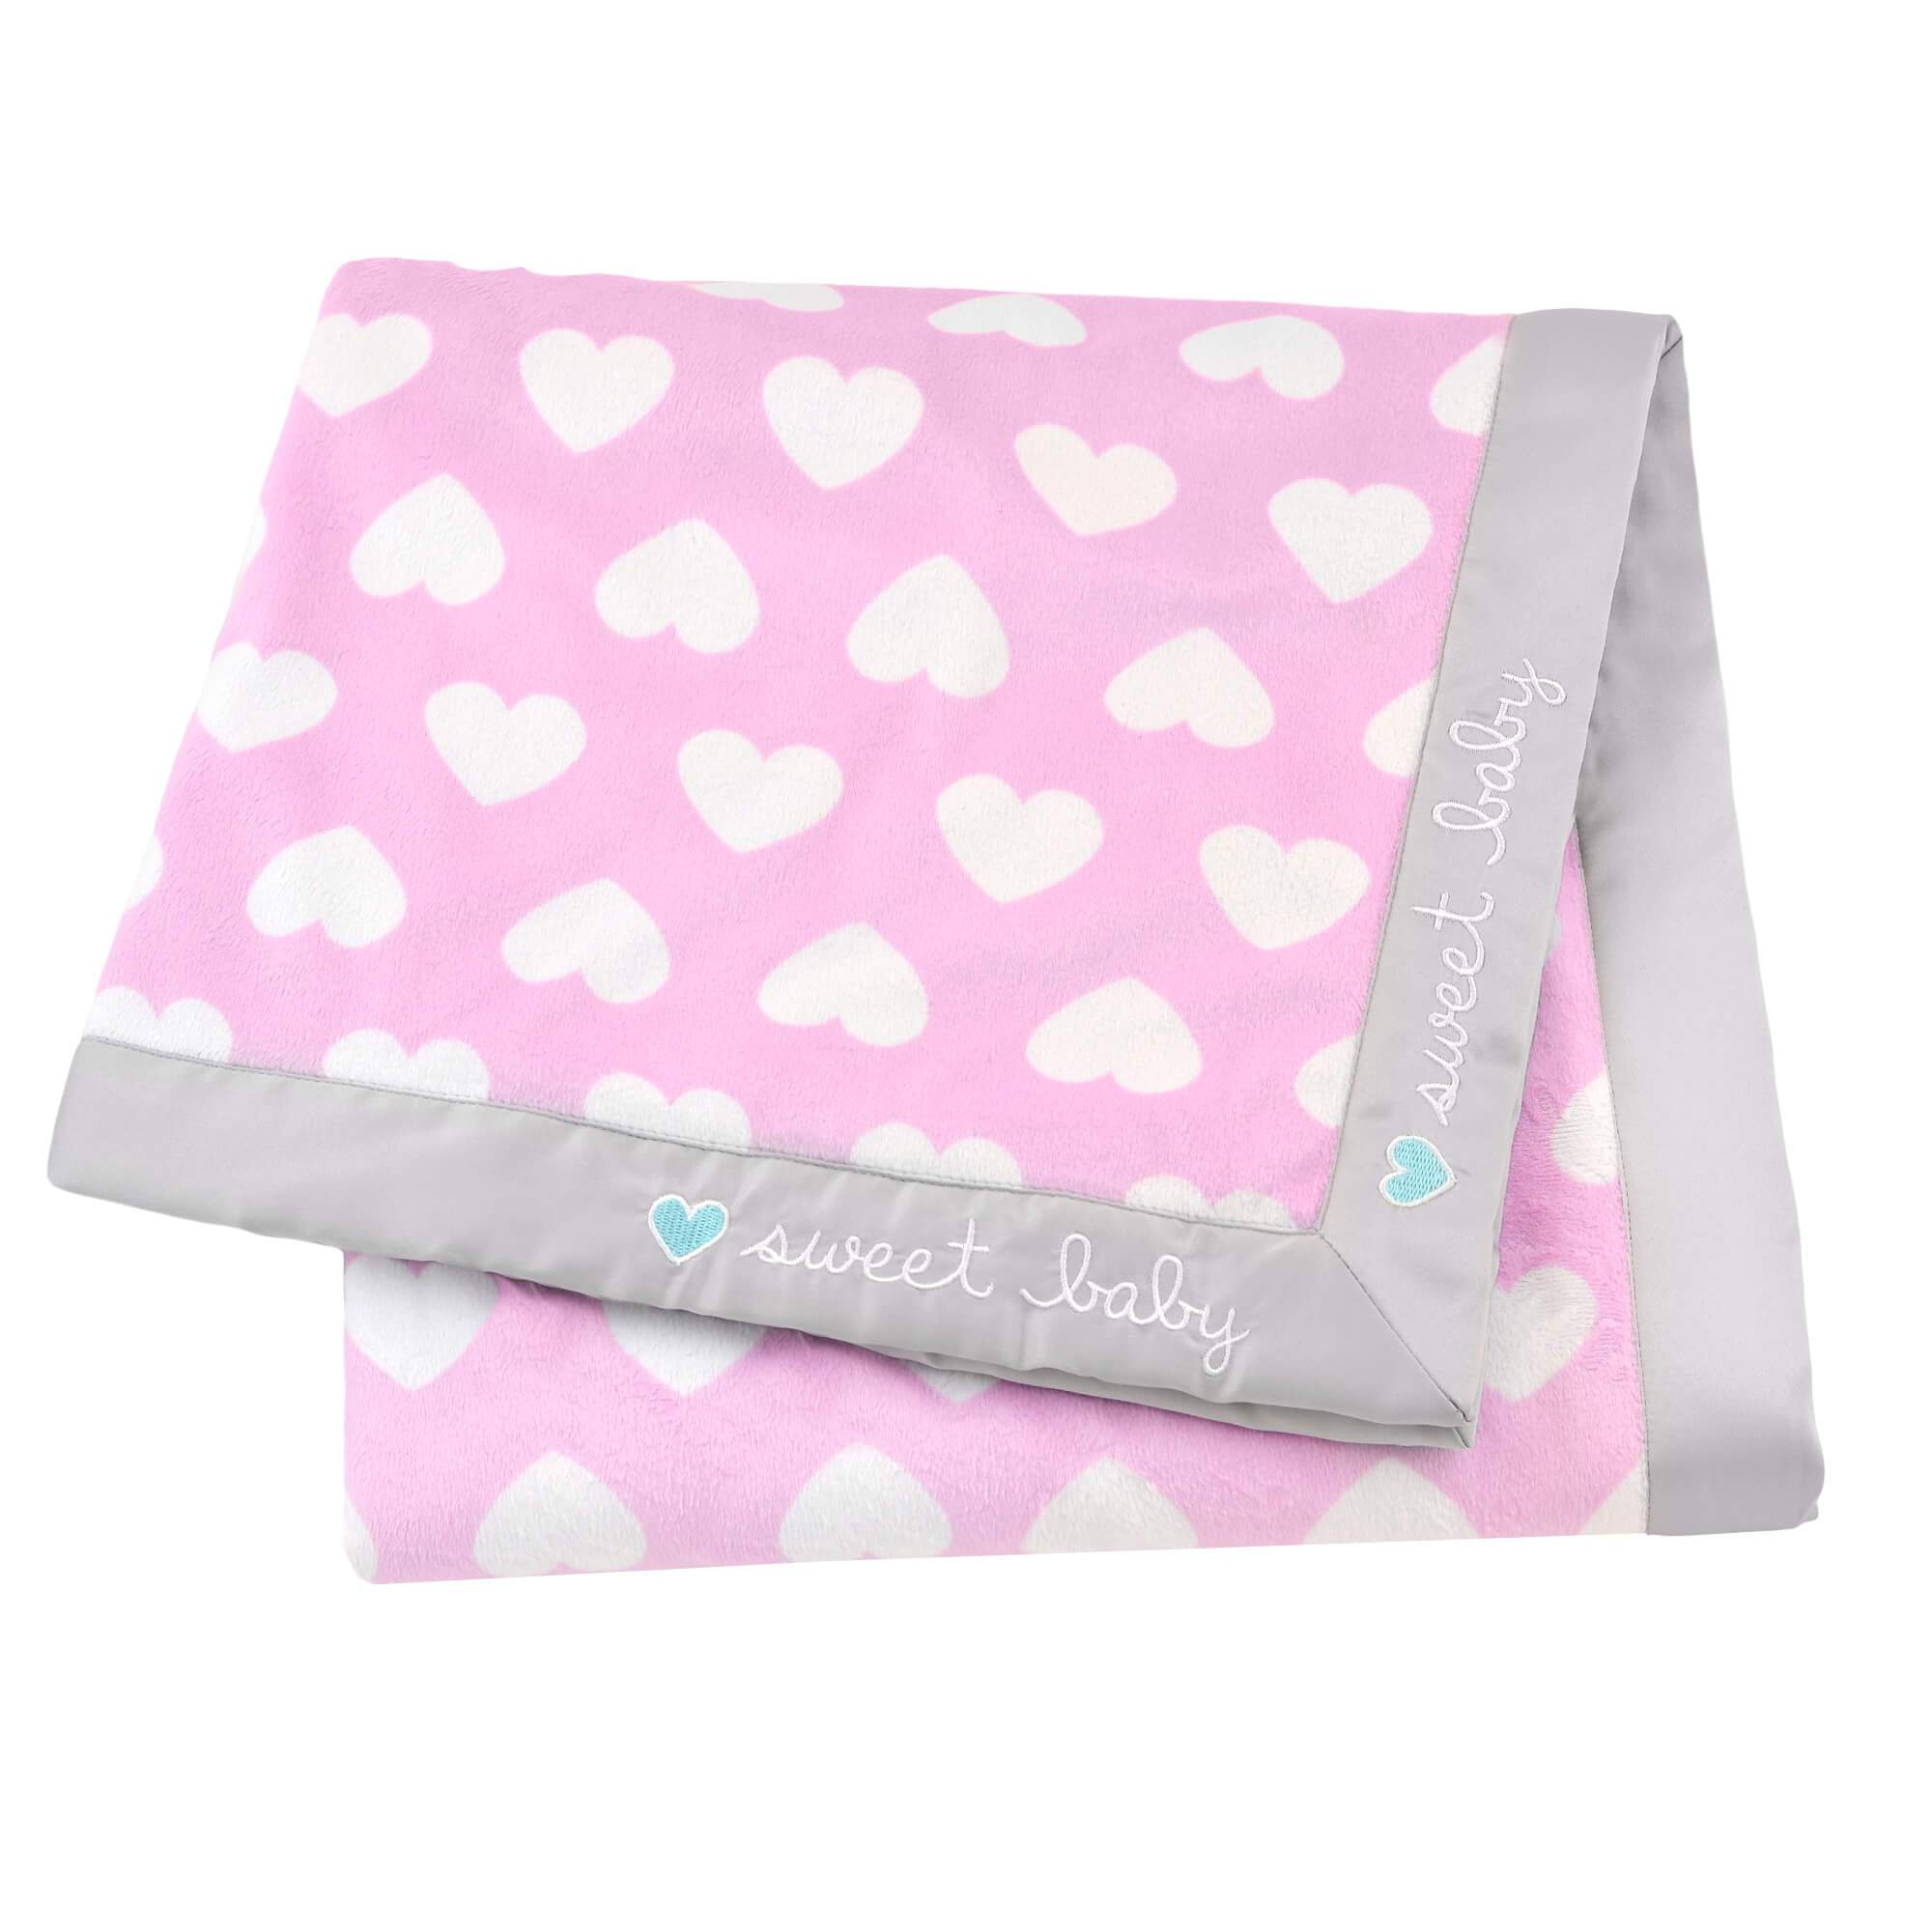 1-Pack Girls Sweet Baby Hearts Plush Blanket